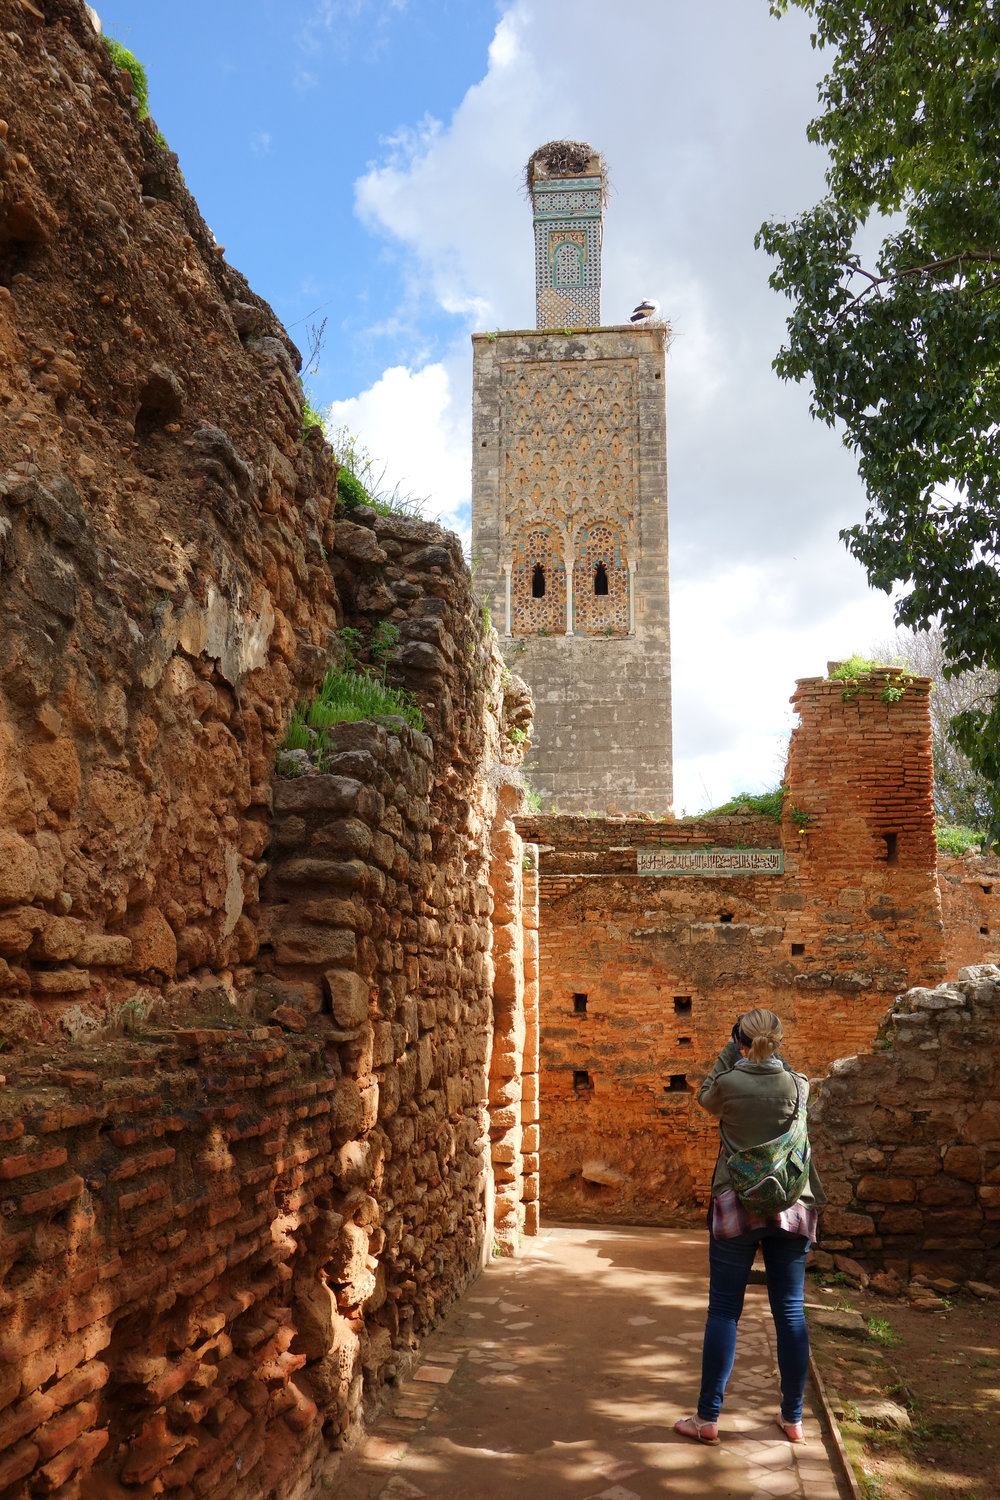 Discover the ancient mosque and minaret at Chellah, Rabat, Morocco.